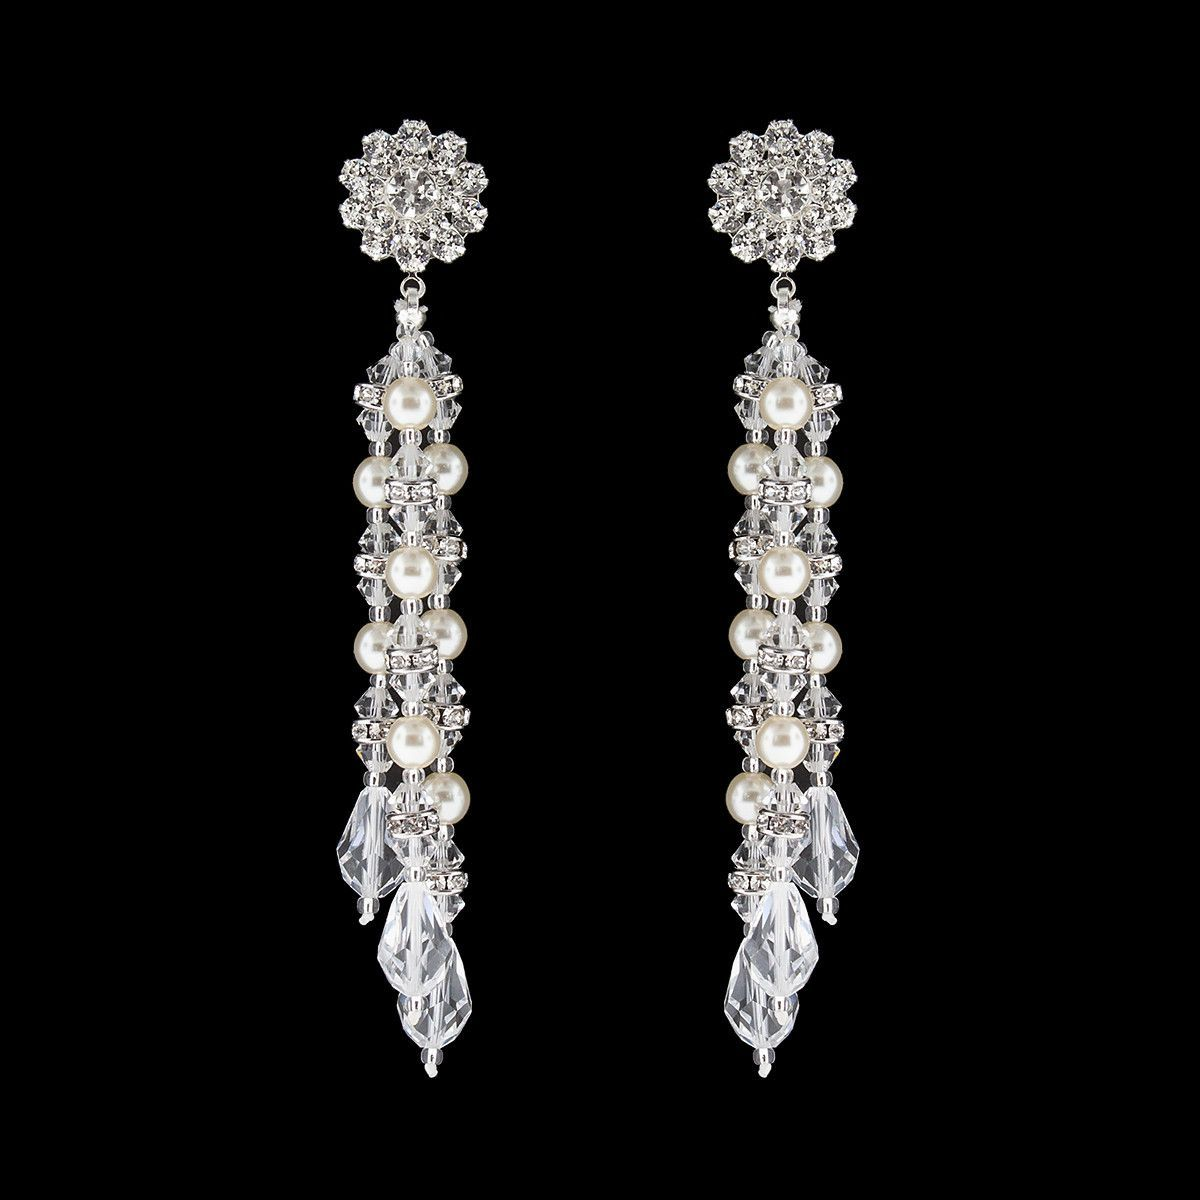 Multi-Drop Pearl & Crystal Earrings | Bridal Earrings ...